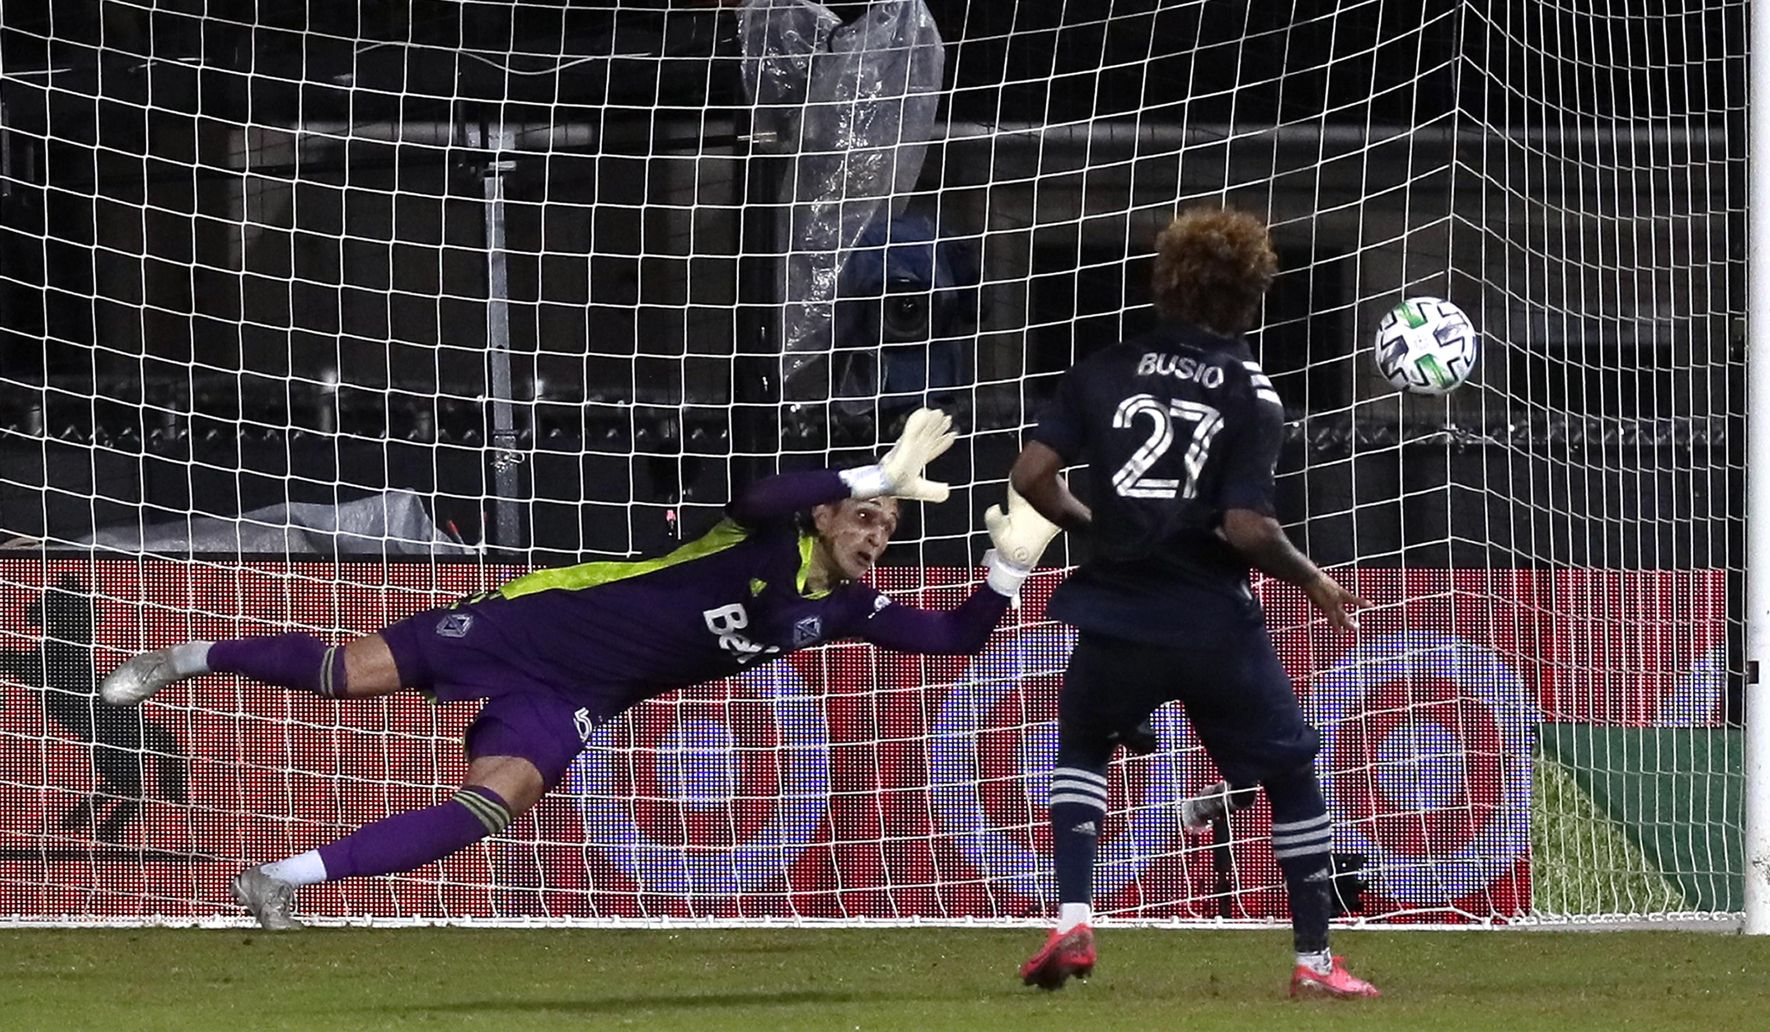 Mls_sporting_kc_whitecaps_soccer_03569_c0-174-4154-2595_s1770x1032